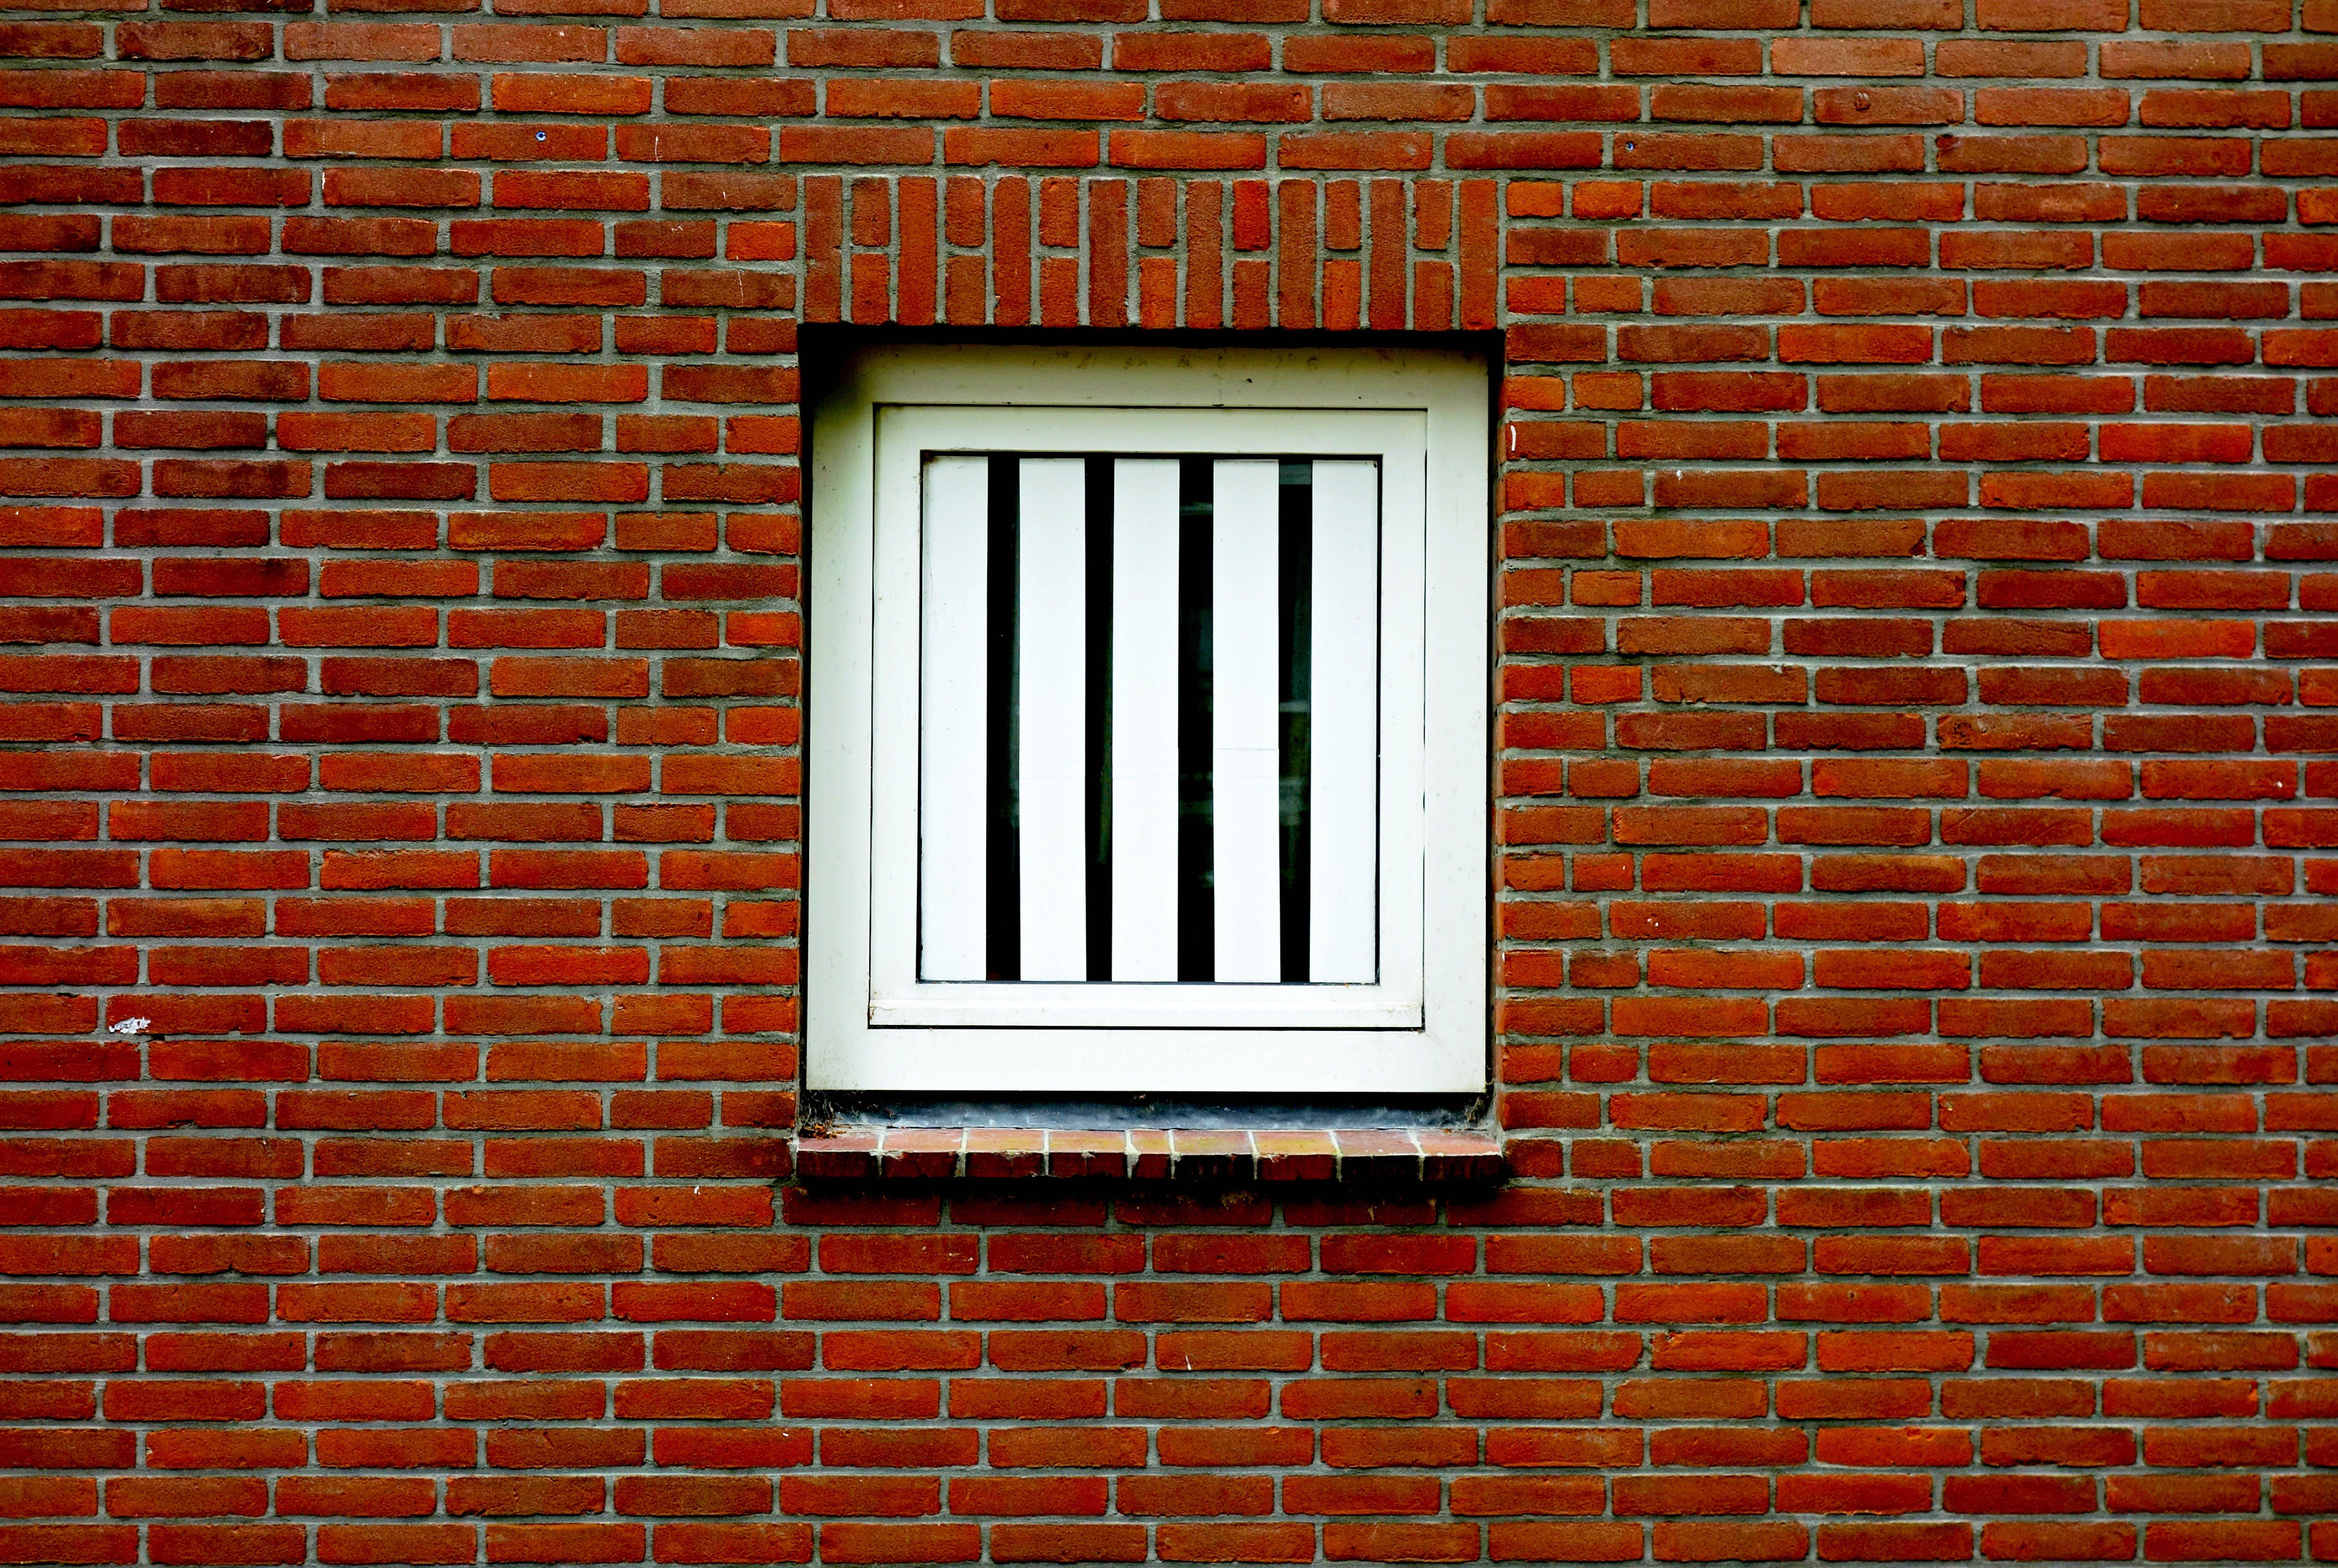 of house, house window, red brick, red brick wall